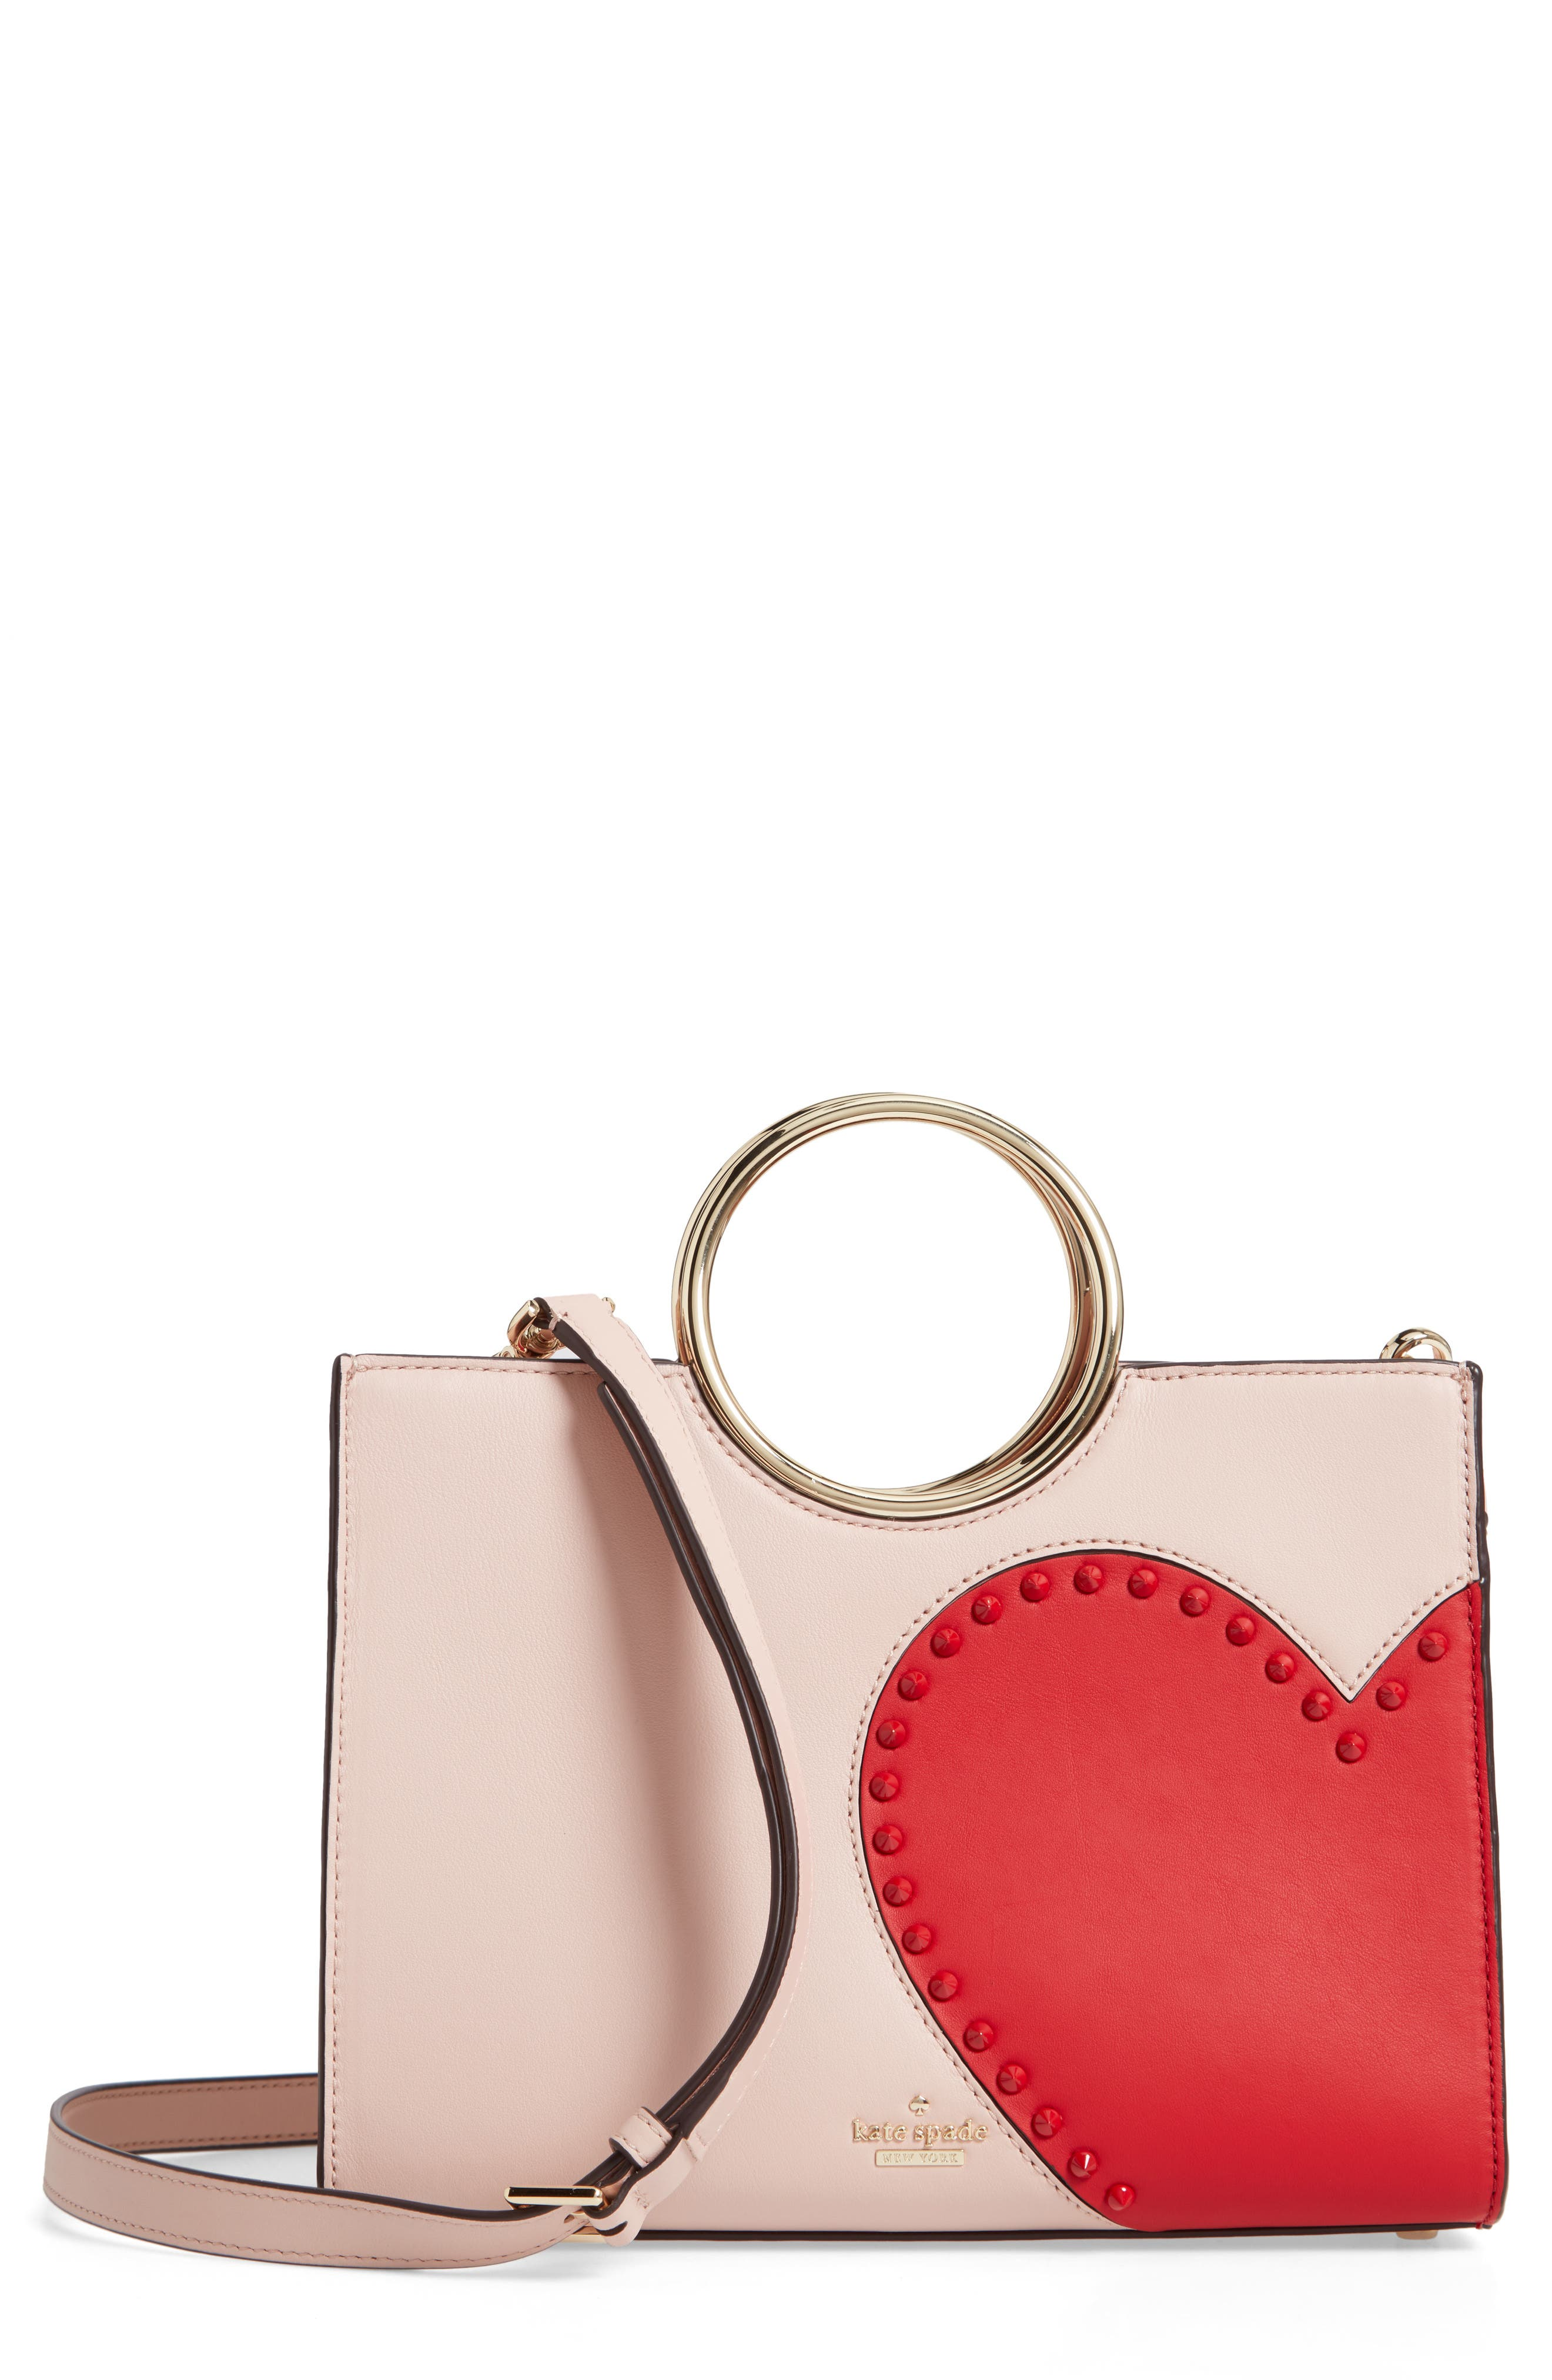 KATE SPADE NEW YORK,                             heart it - sam leather satchel,                             Main thumbnail 1, color,                             650